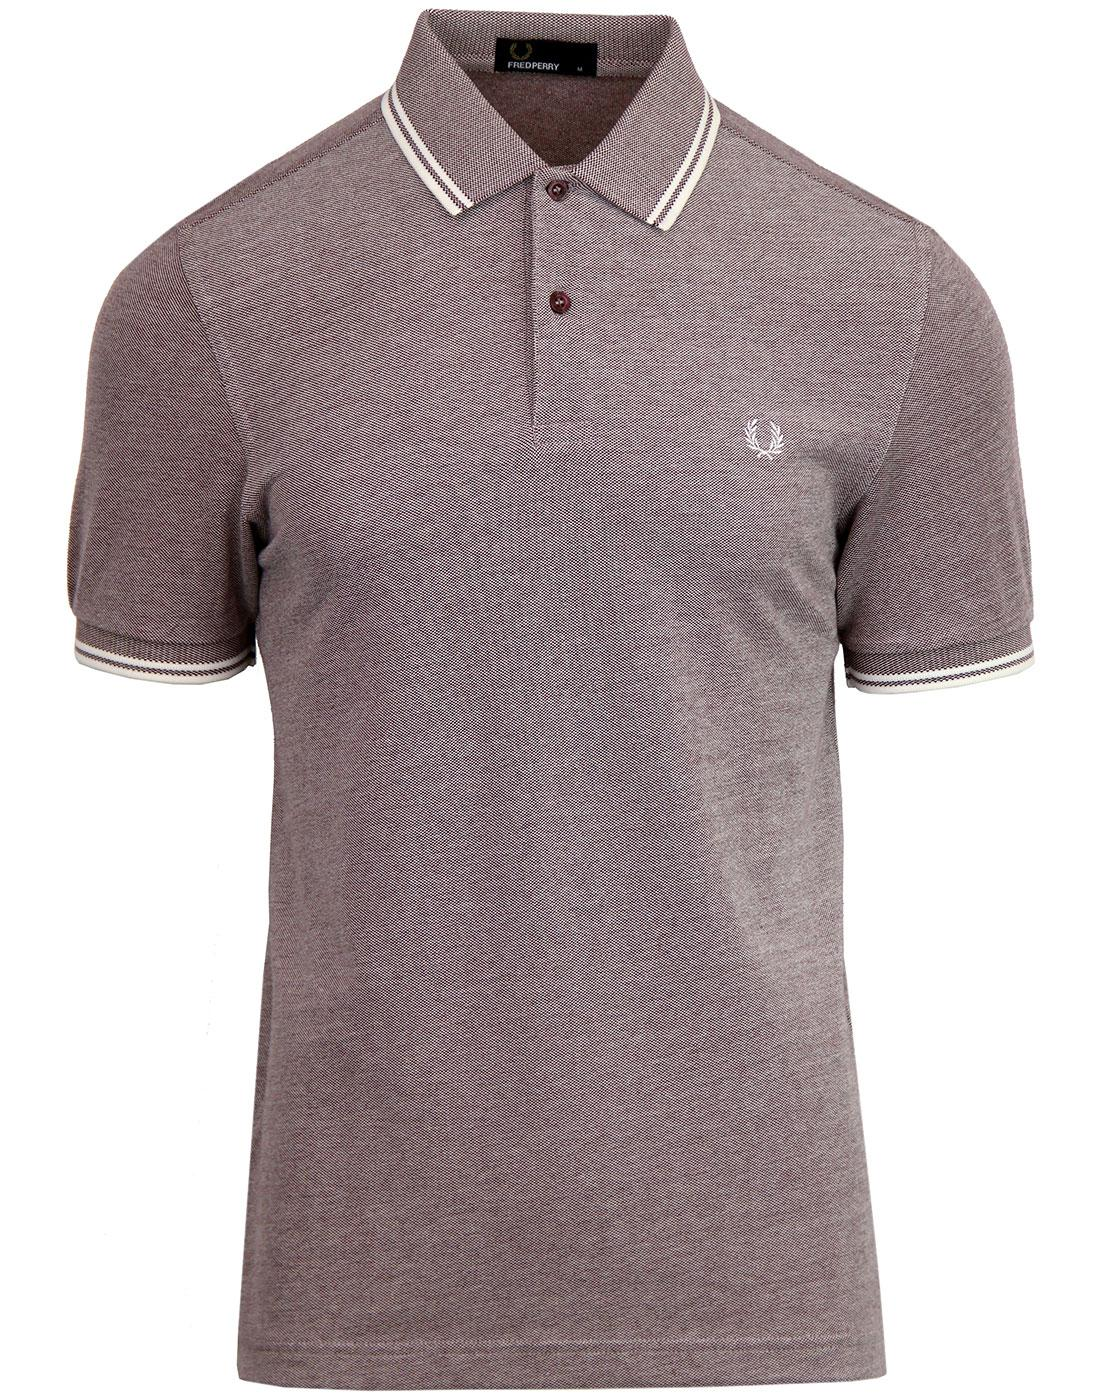 FRED PERRY M3600 Mod Twin Tipped Polo Shirt - MM